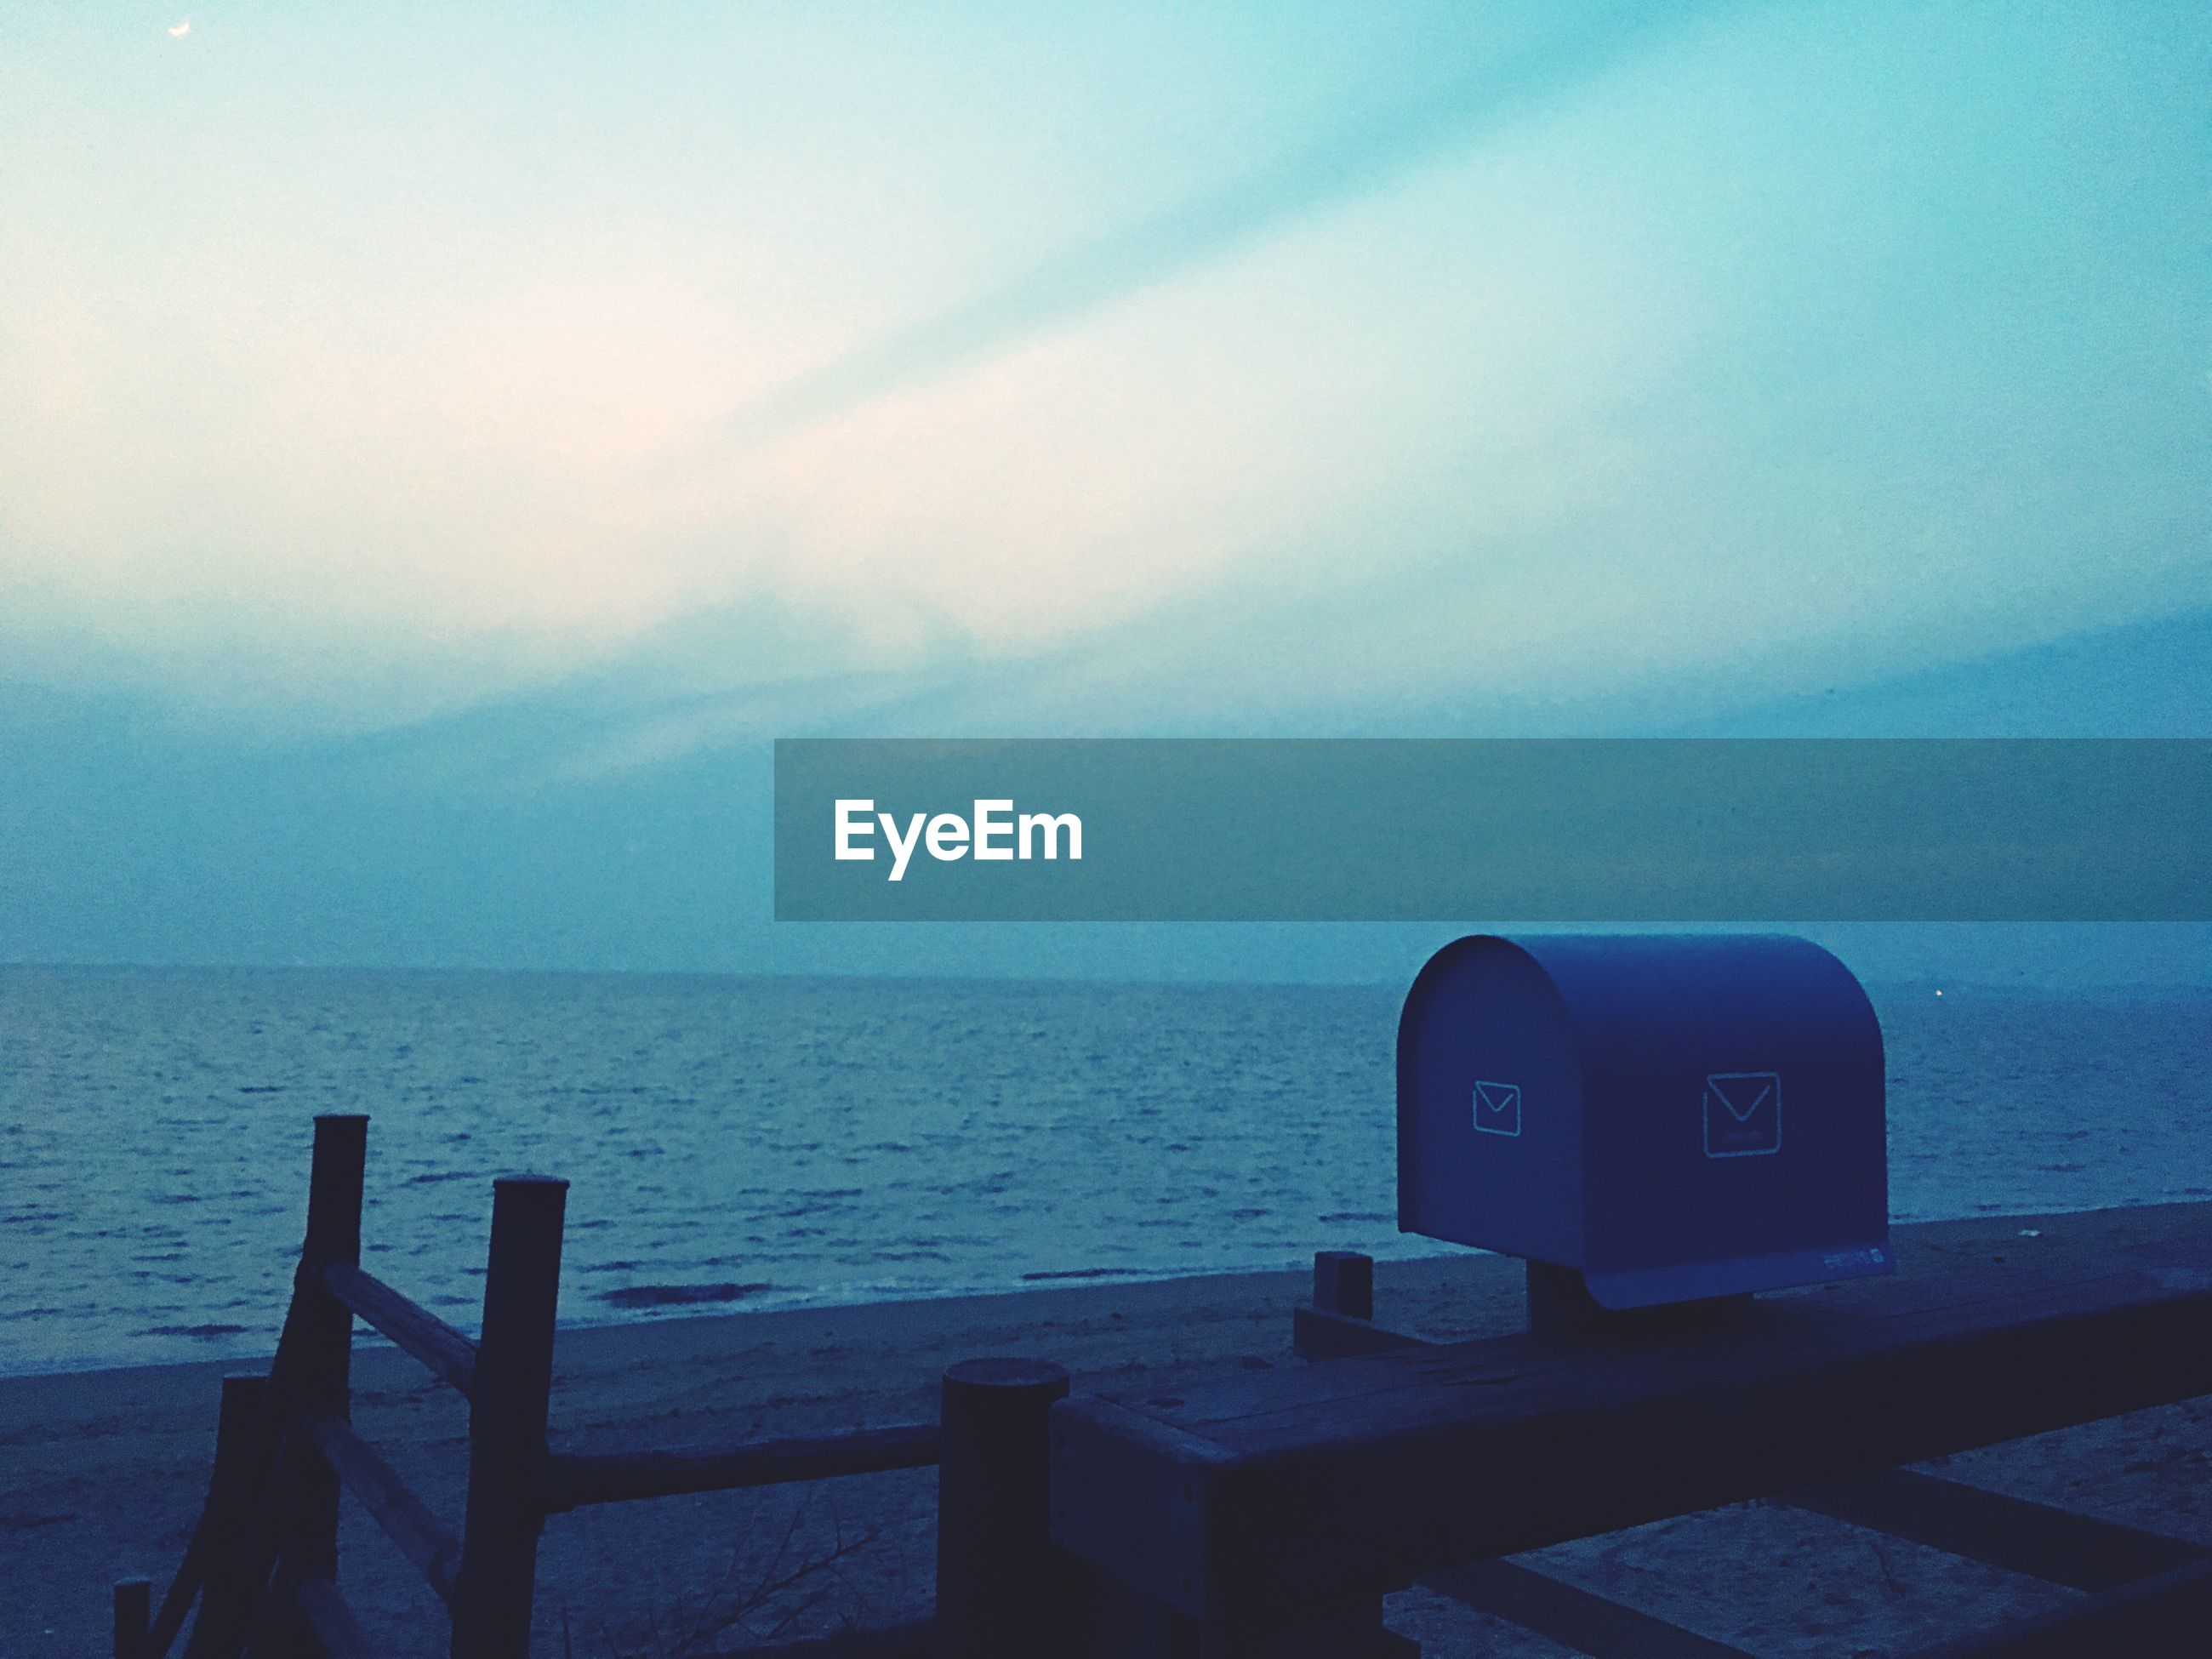 sky, sea, horizon over water, nature, cloud - sky, no people, tranquility, beach, water, scenics, outdoors, technology, coin-operated binoculars, beauty in nature, day